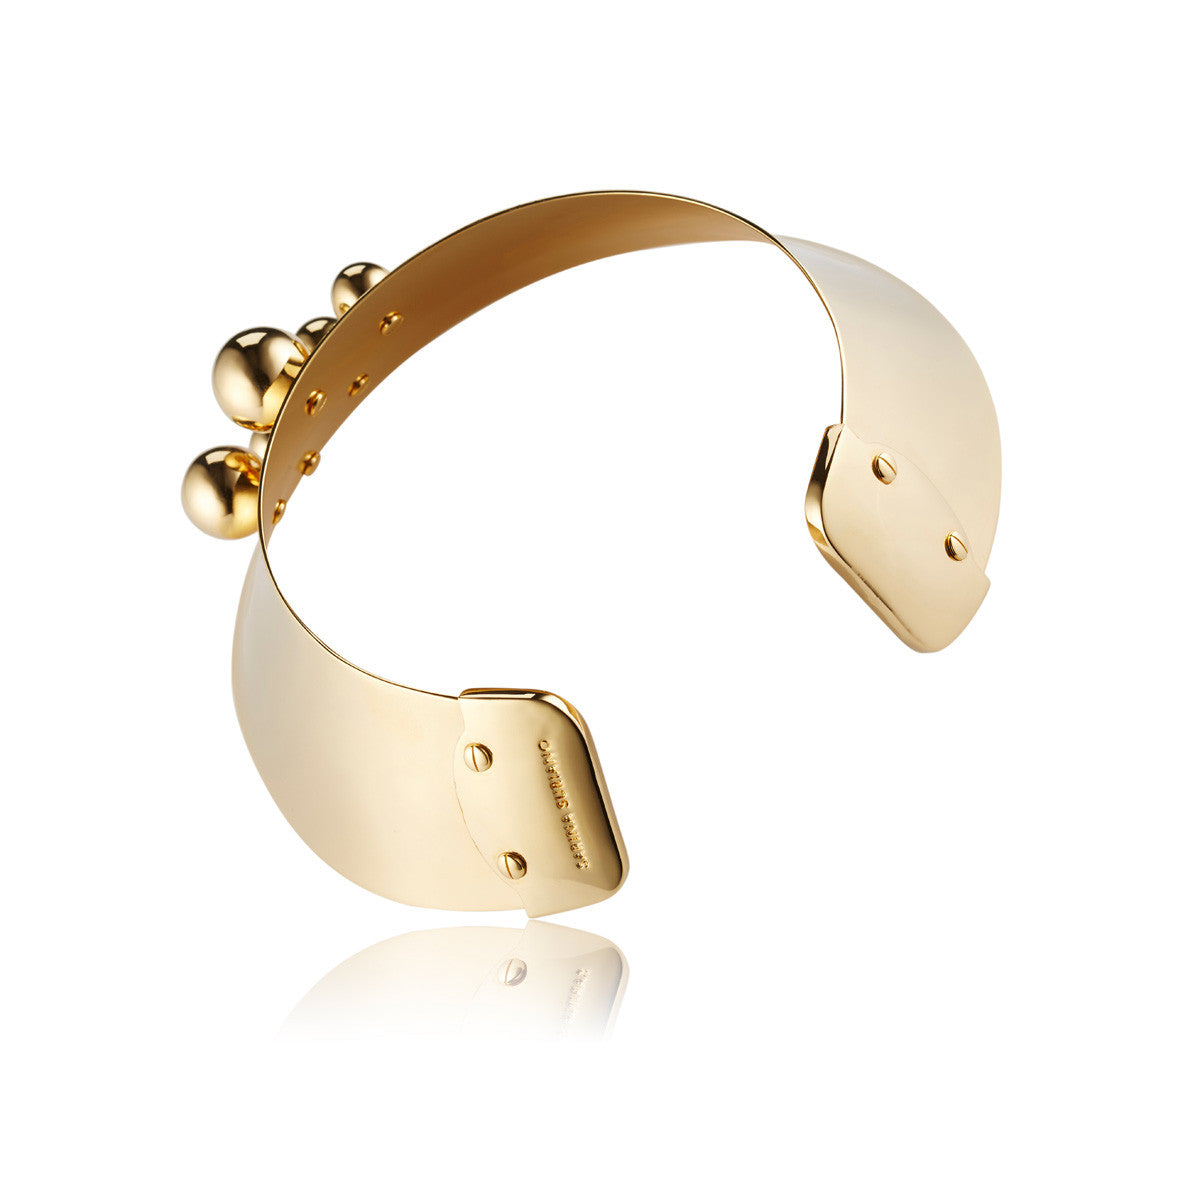 Solid brass, 18K gold plated Stellatus neck cuff is adorned with a cluster of gleaming spheres – back